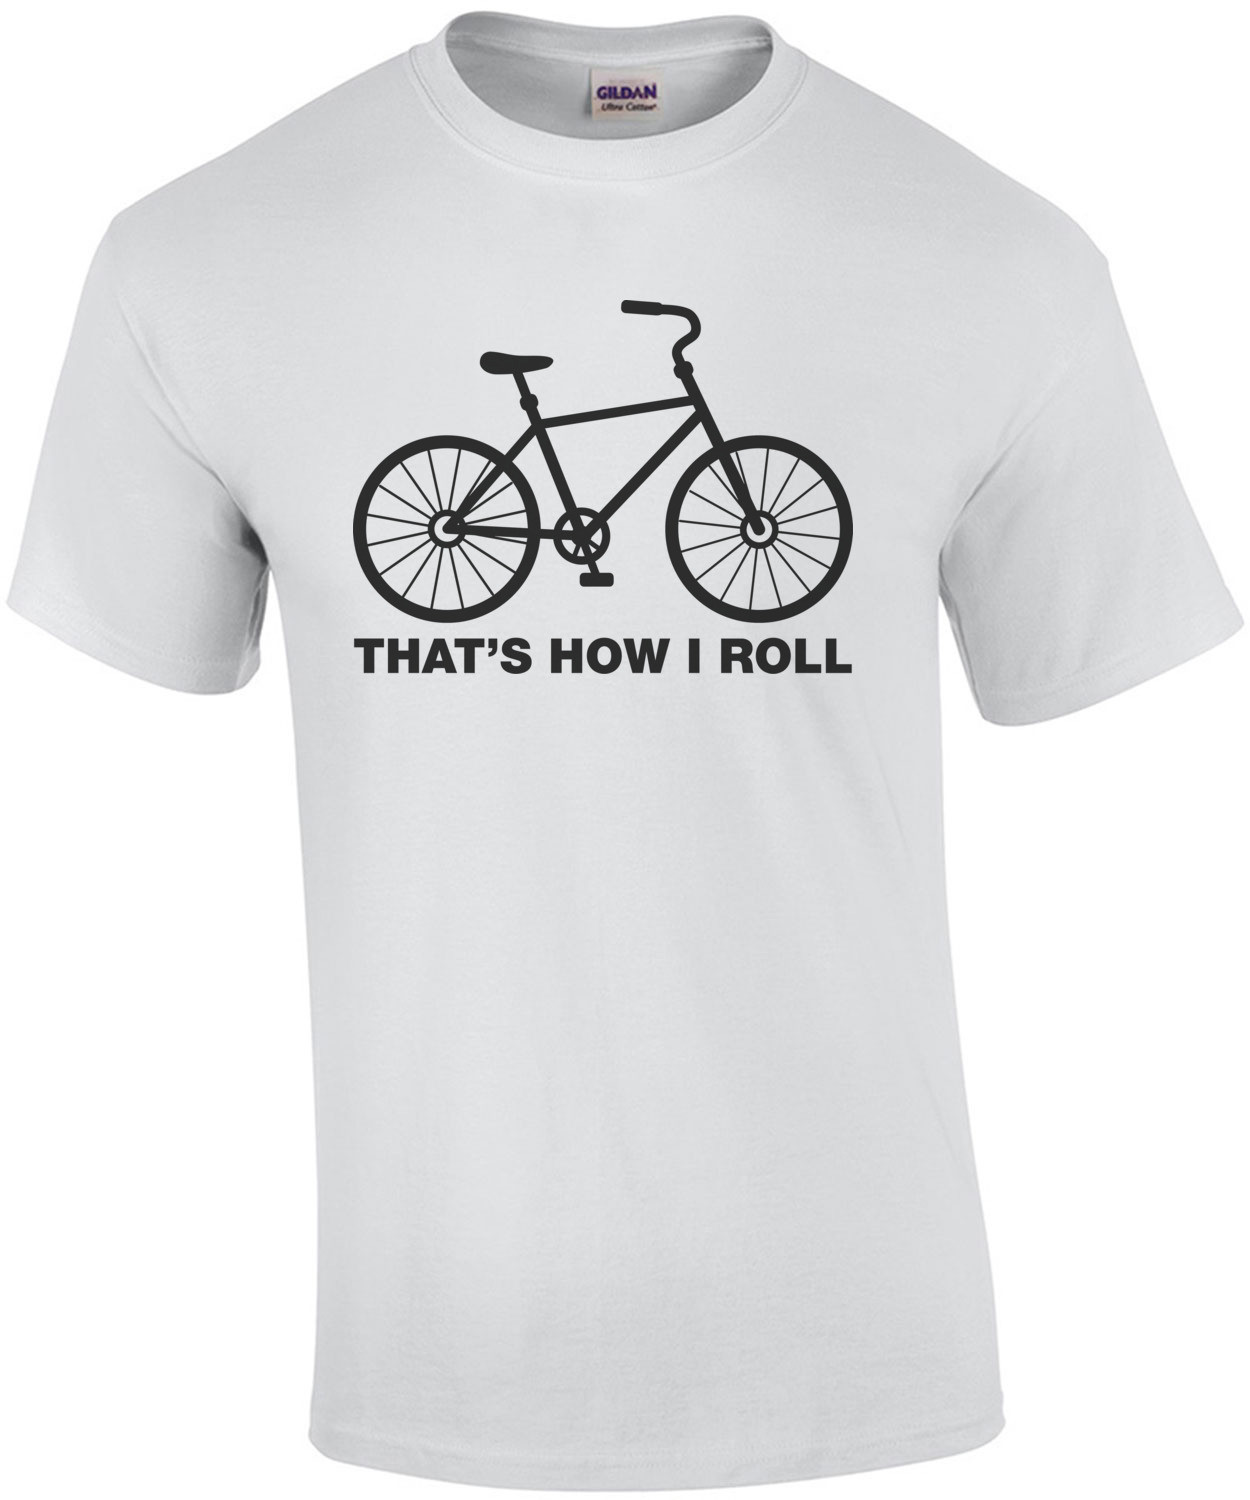 That's How I Roll Bicycle T-Shirt